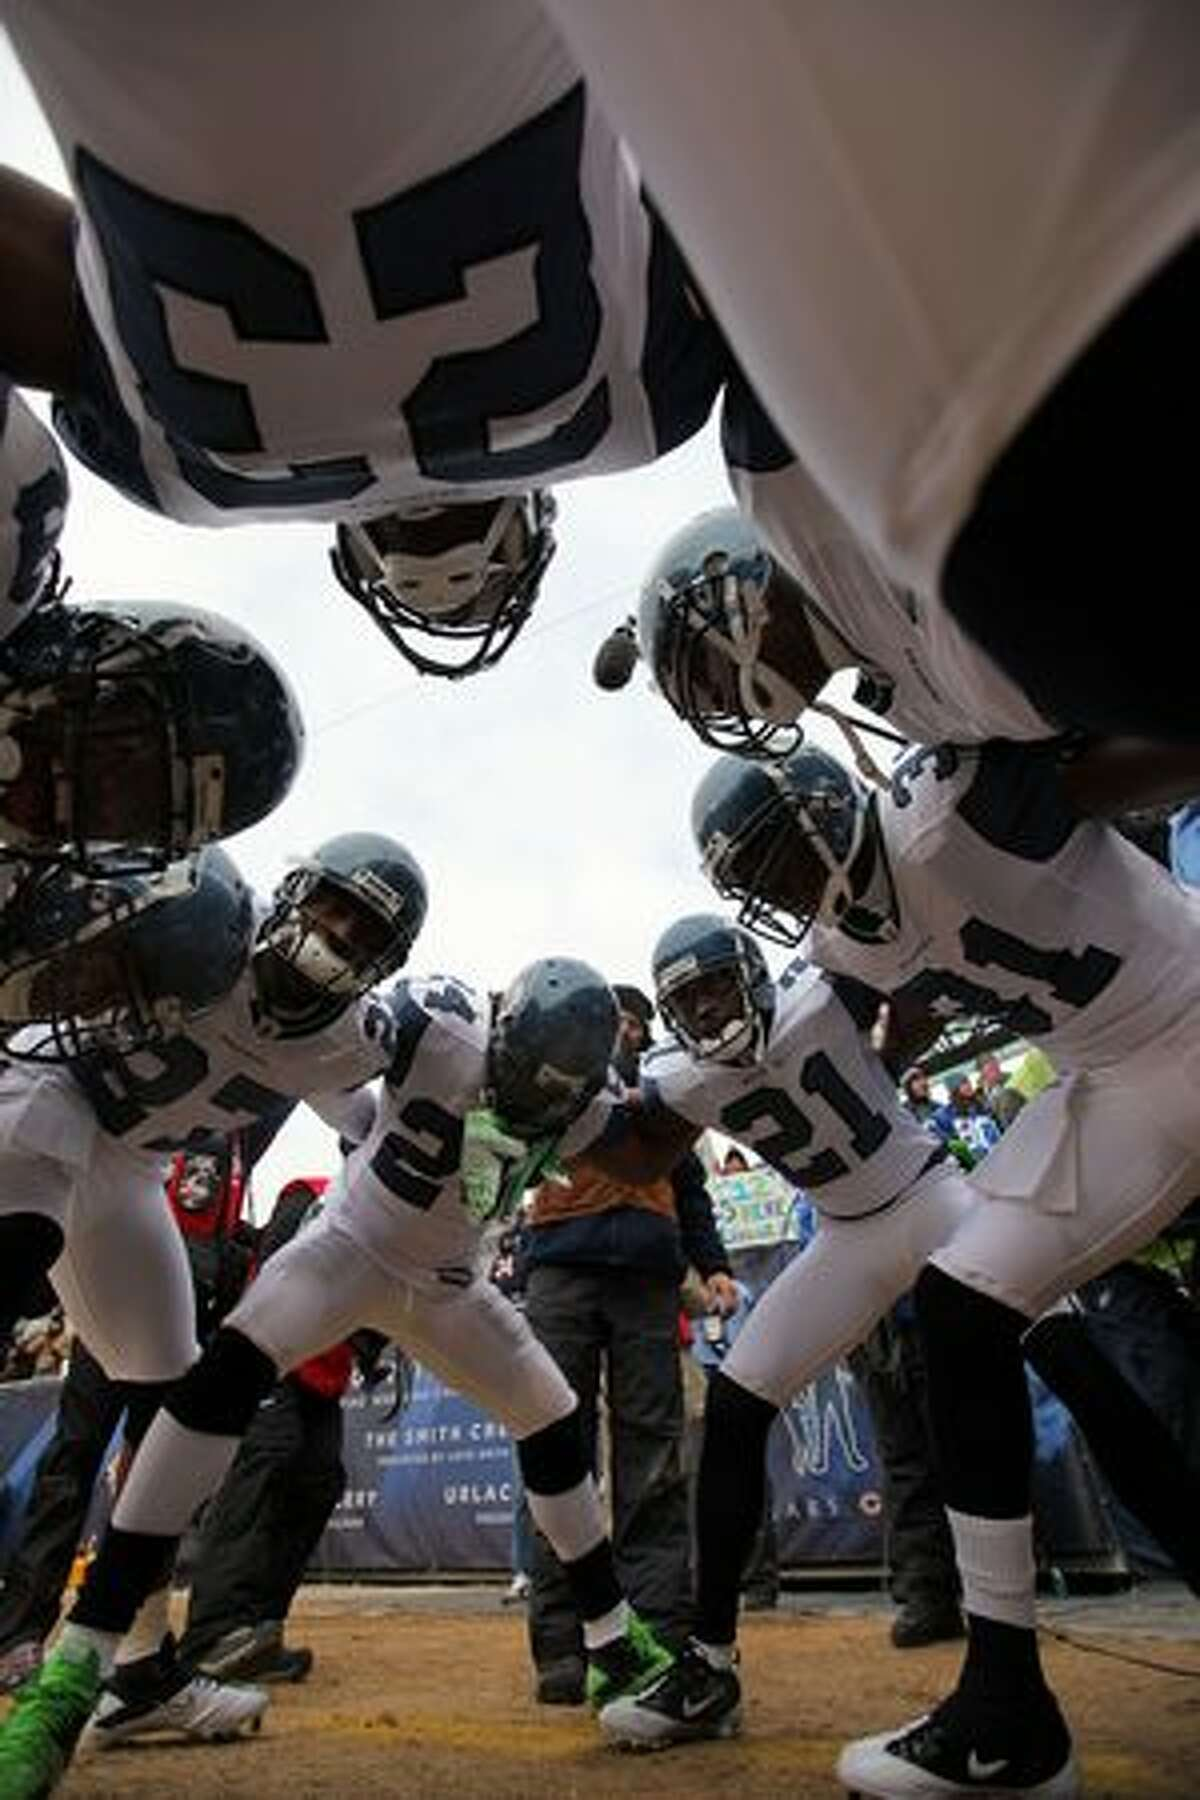 CHICAGO, IL - JANUARY 16: The Seattle Seahawks huddle before taking on the Chicago Bears in the 2011 NFC divisional playoff game at Soldier Field on January 16, 2011 in Chicago, Illinois.